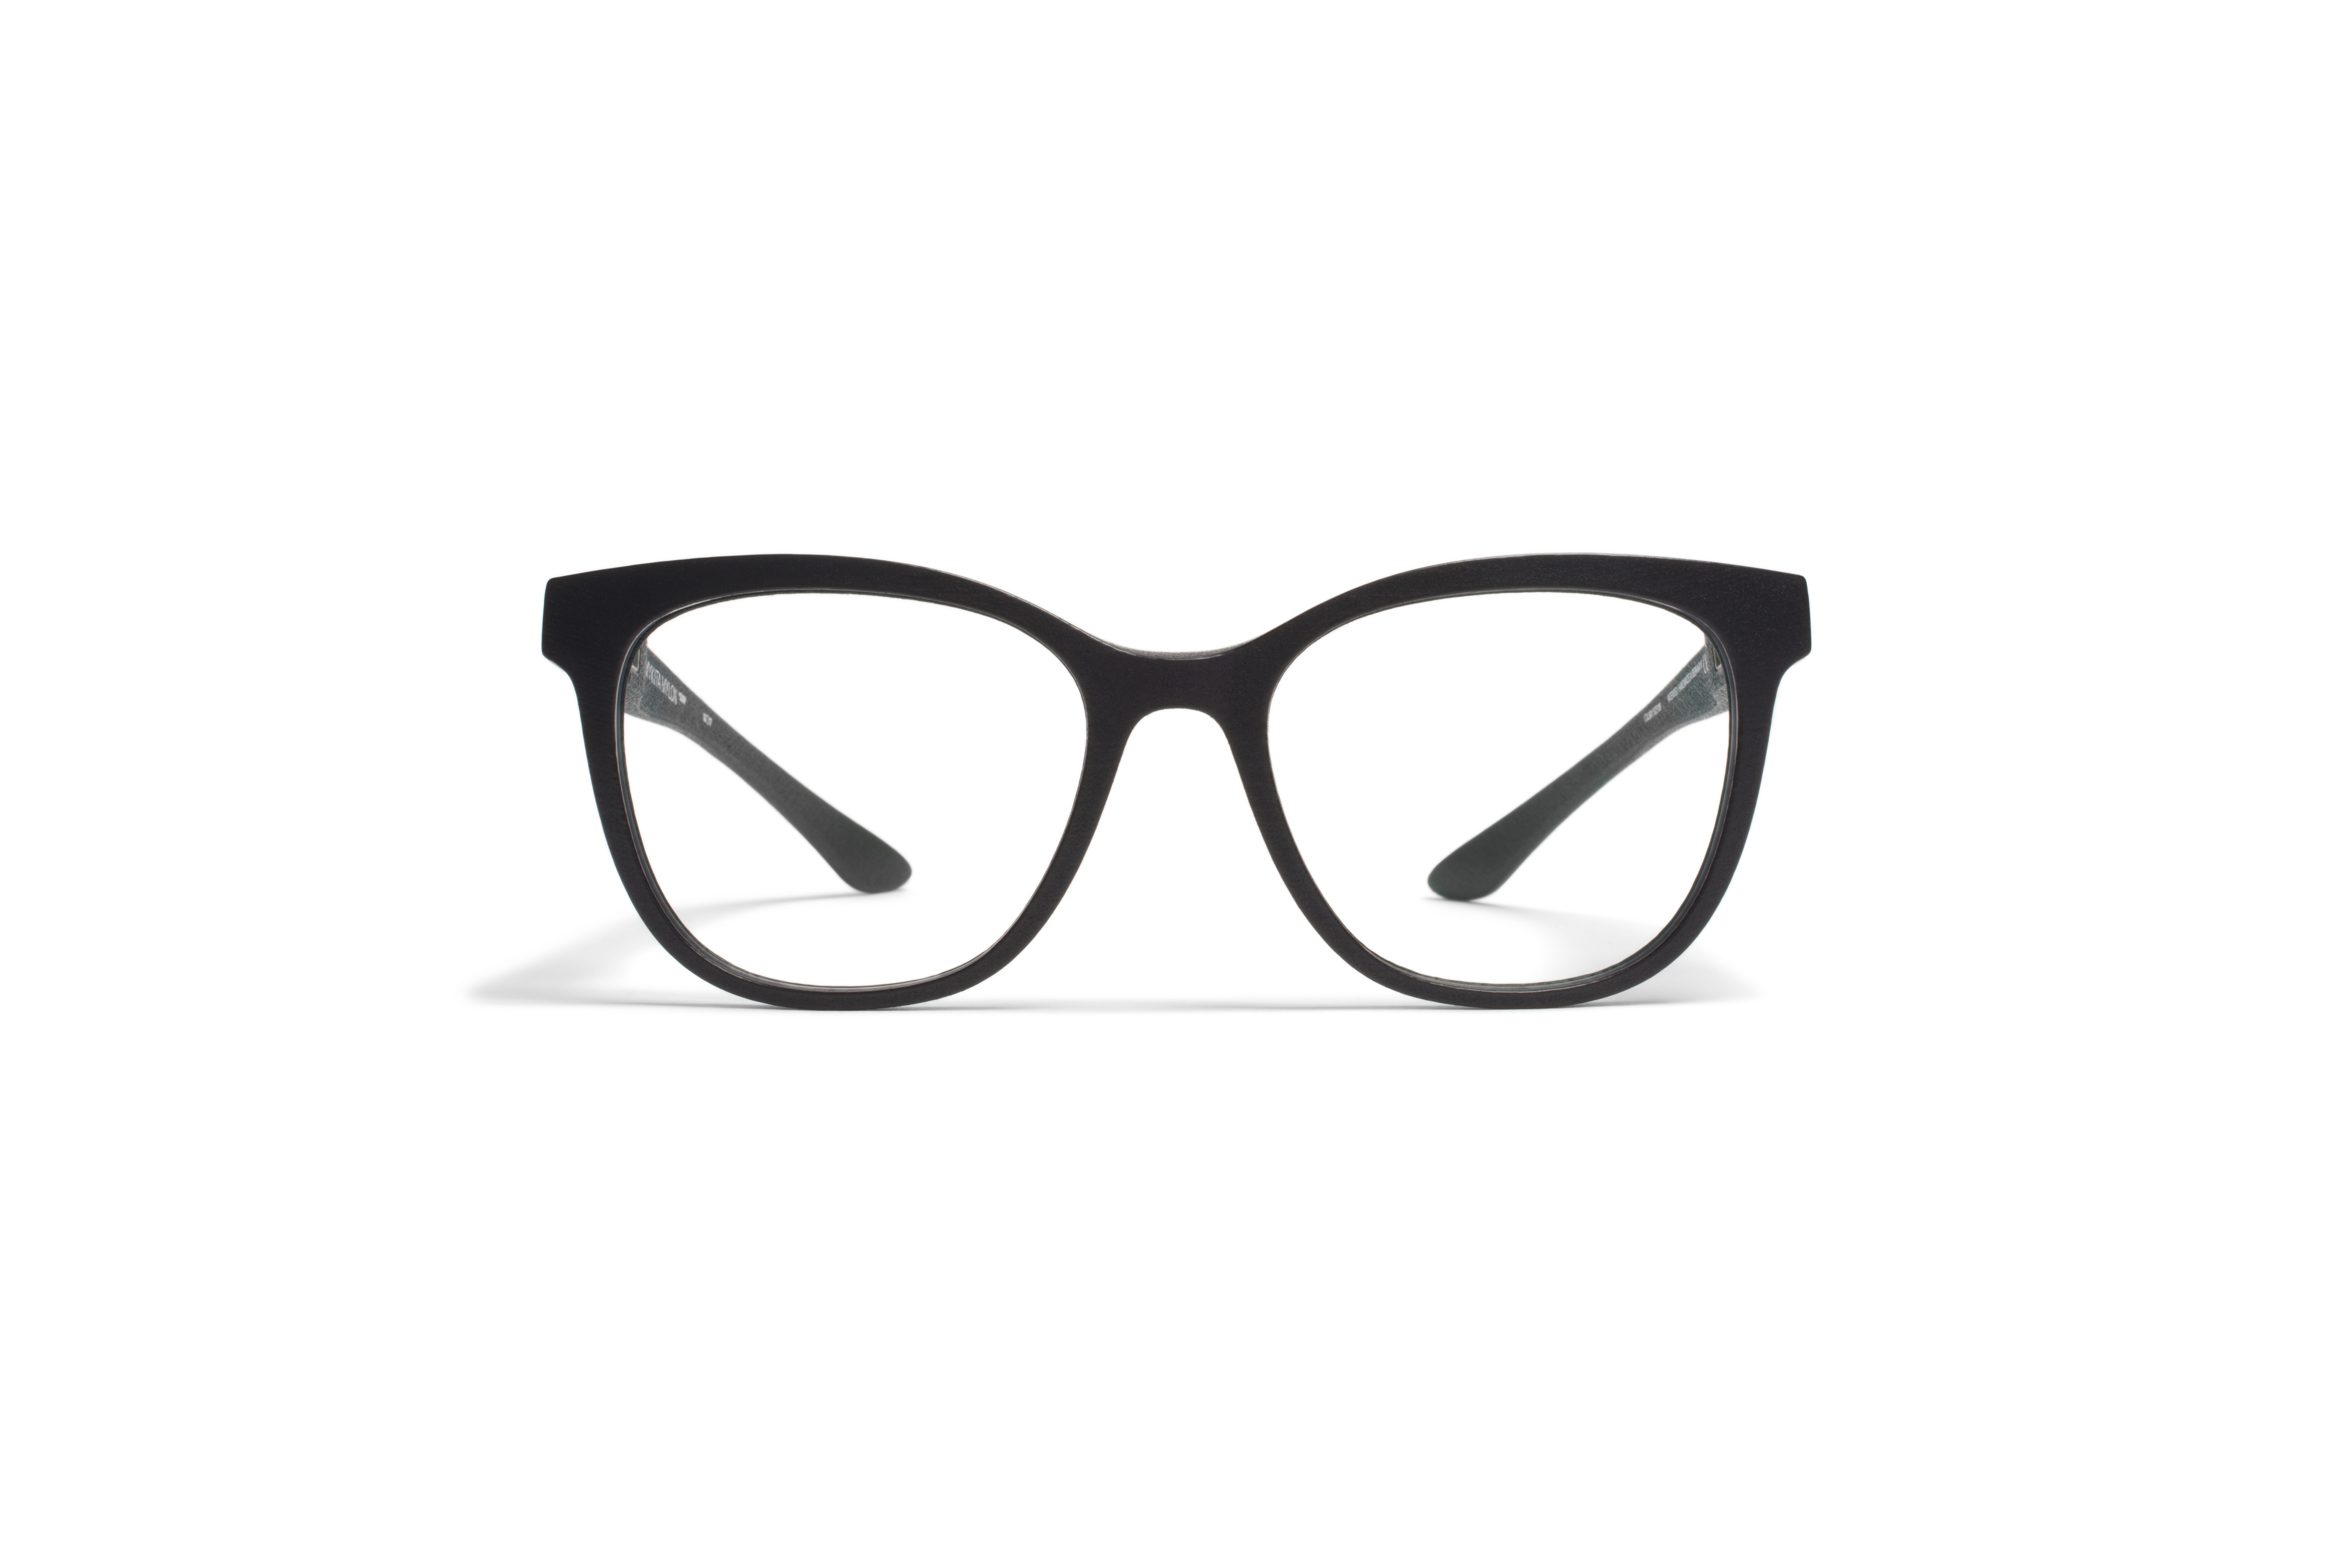 Mykita Mylon Rx Suni Md1 Pitch Black Clear 3502046553139a0becd4